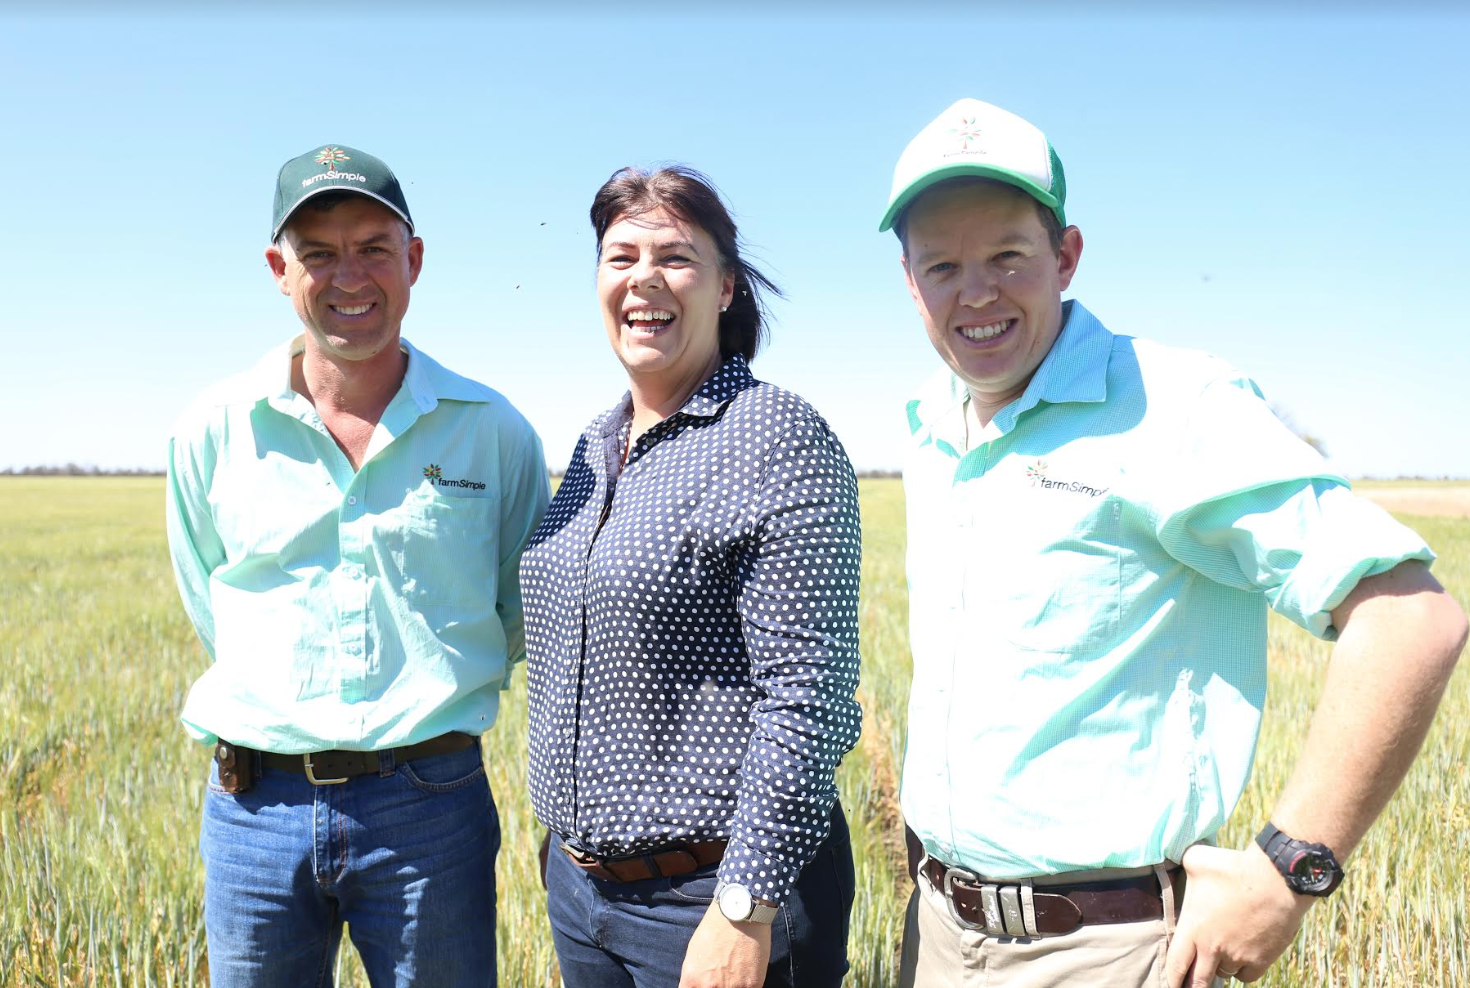 farmSimple's Lee Coleman and Matt Higham with, at centre, IntellectAg's Brooke Sauer, organiser of the Founders to Field Tour.